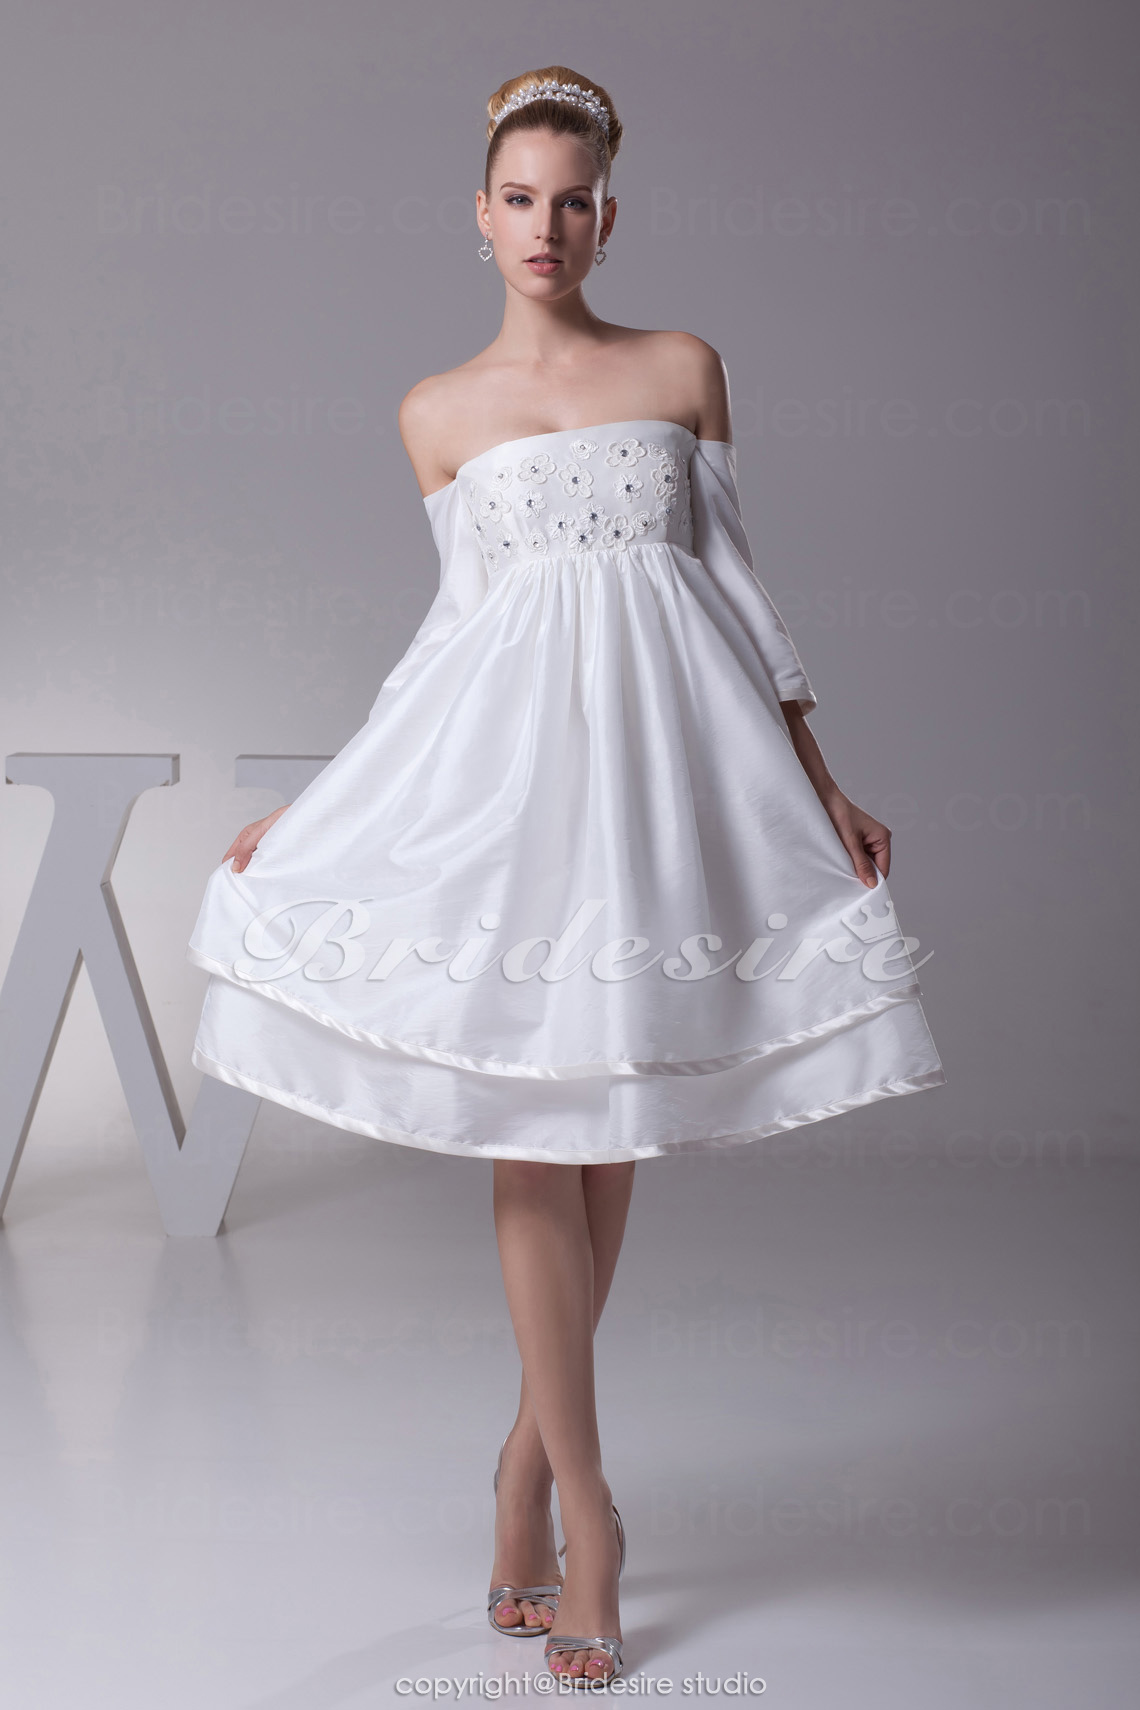 A-line Strapless Knee-length Short Sleeve Taffeta Dress